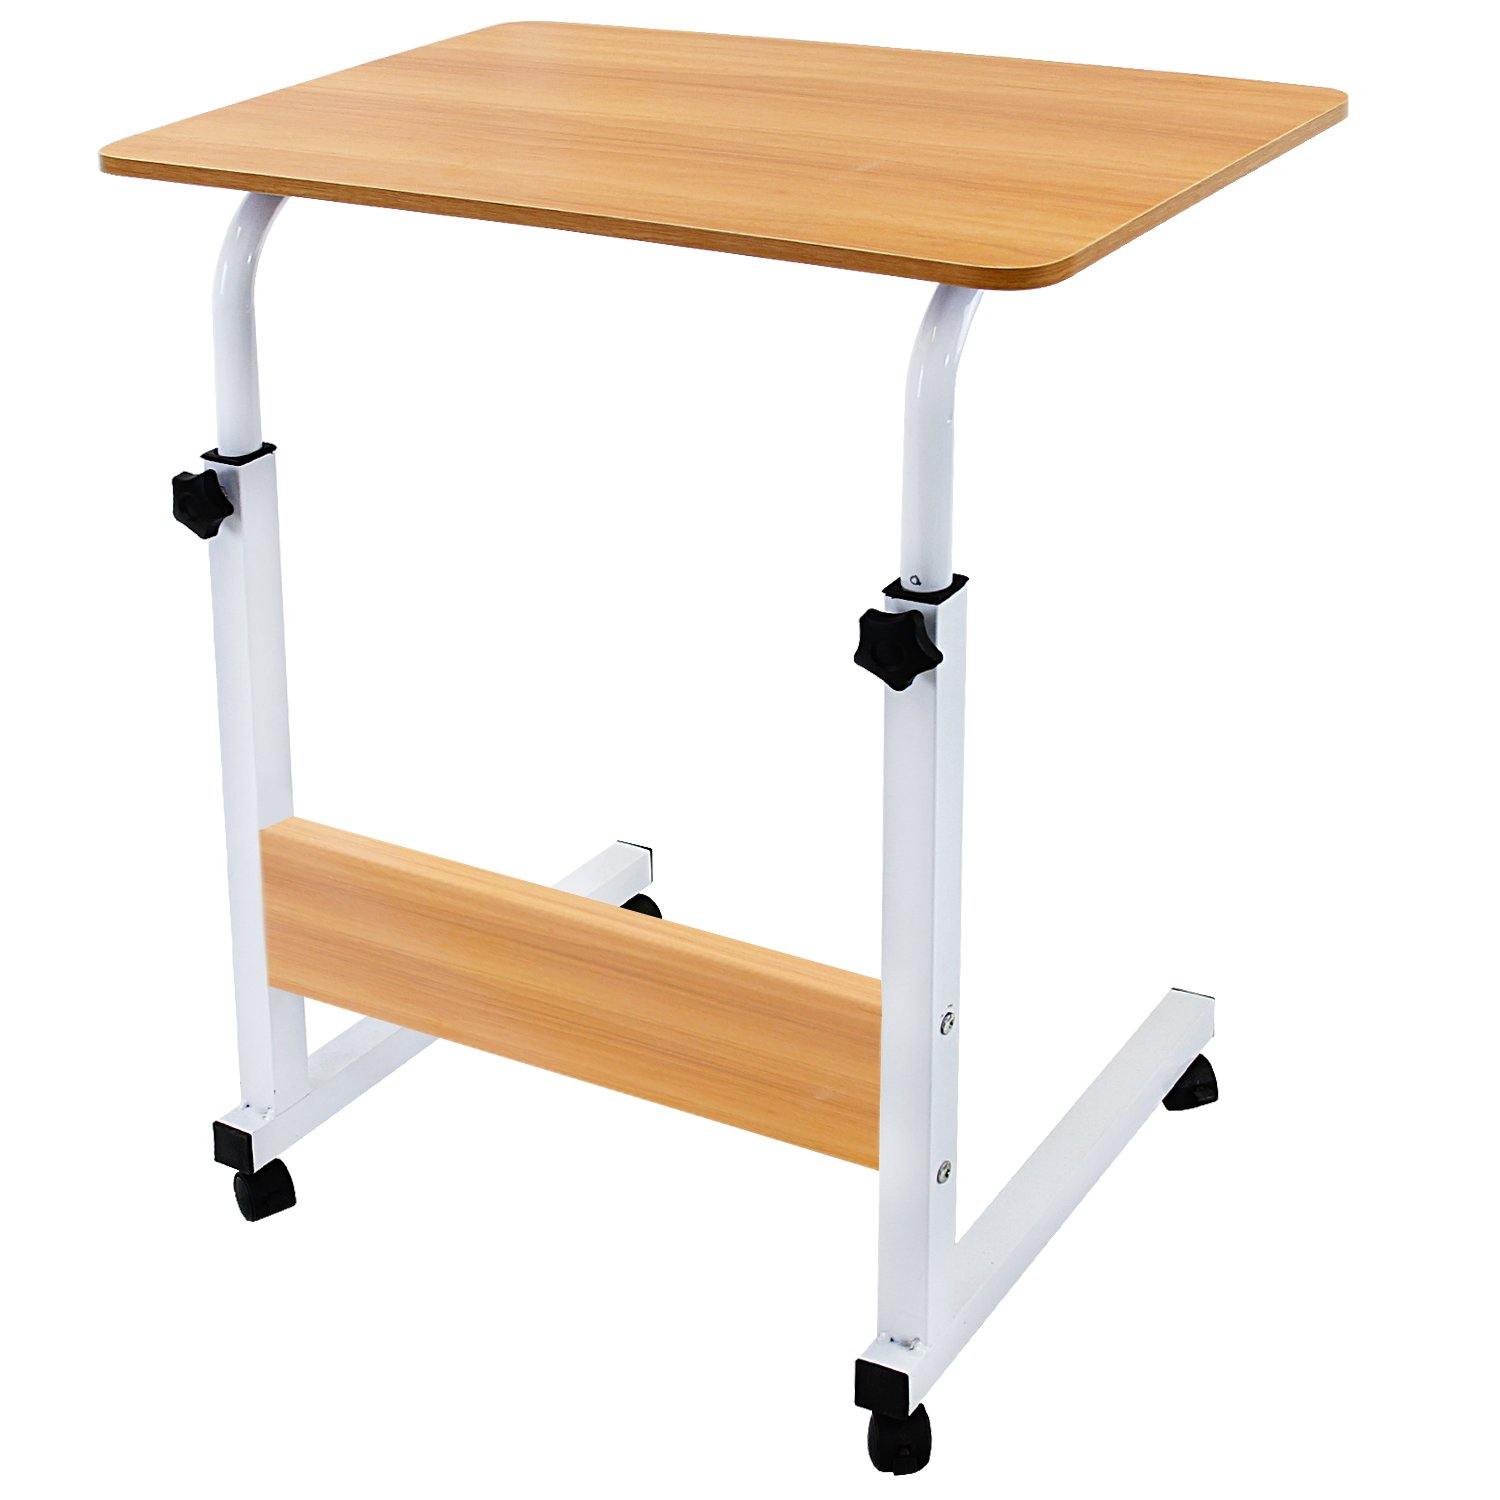 DL furniture - Adjustable Height Laptop Desktop Table Stand, Over Bed Side Table with Wheels   Natural Wood with Natural Wood Support